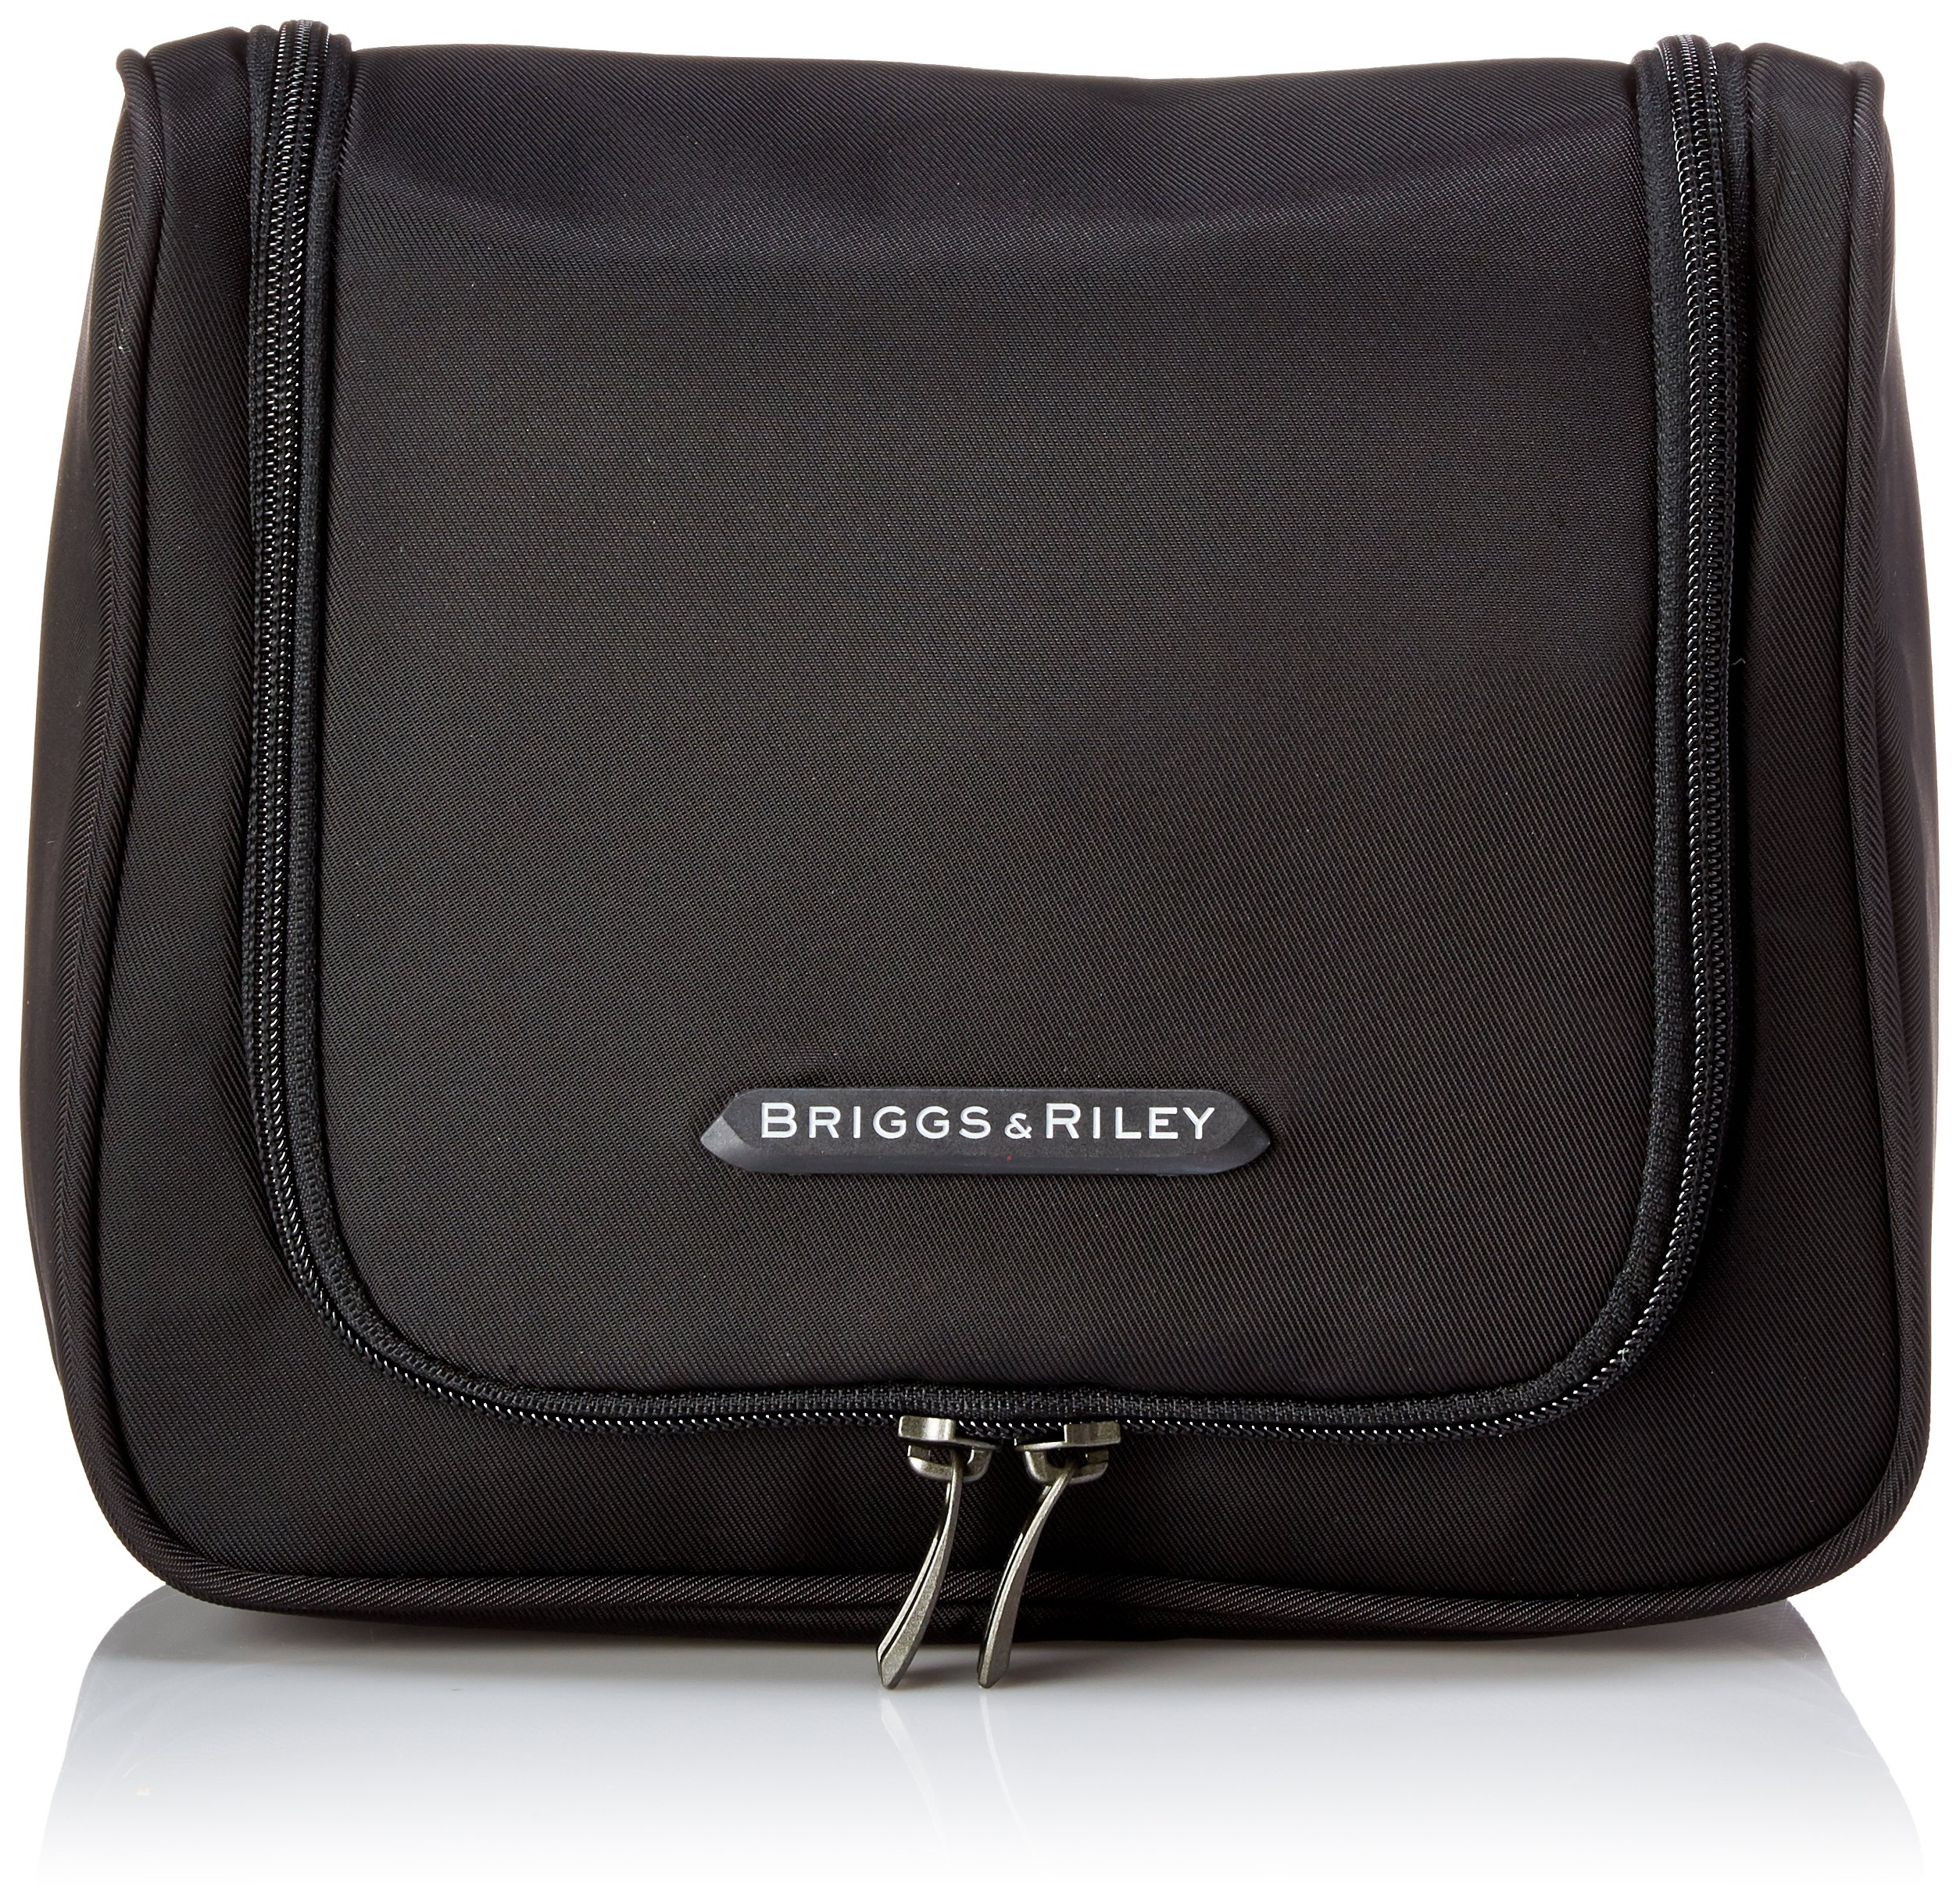 Briggs & Riley Hanging Toiletry Kit, Black, One Size